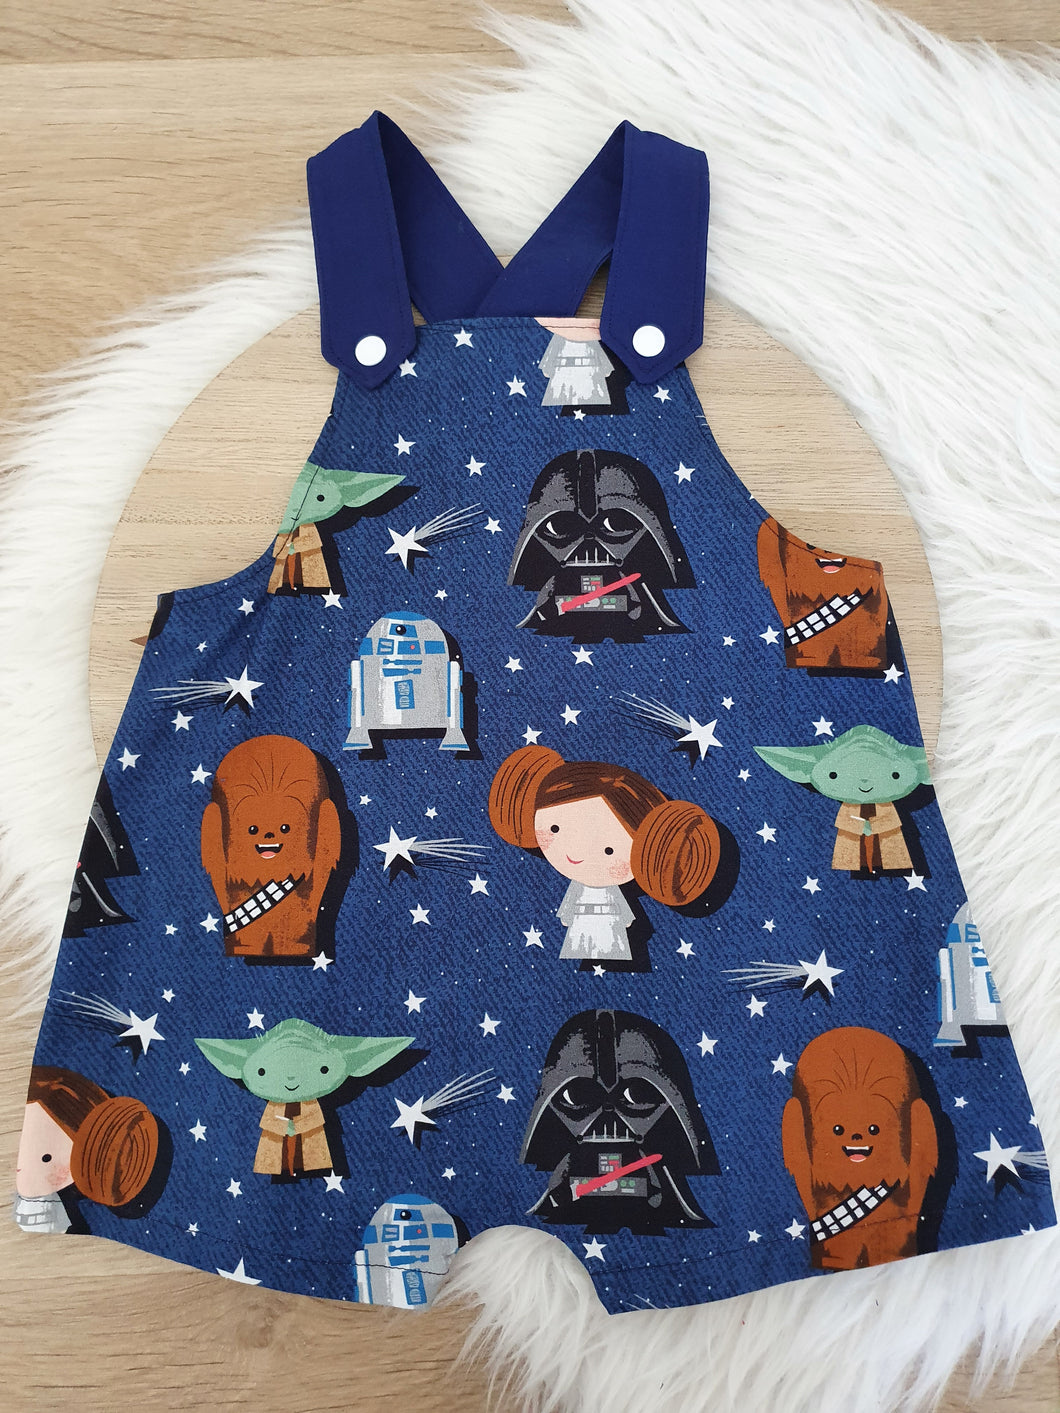 BABY STAR WARS print - Size 1 Baby Overalls, Short Leg Romper / 1st Birthday / Cake Smash Outfit